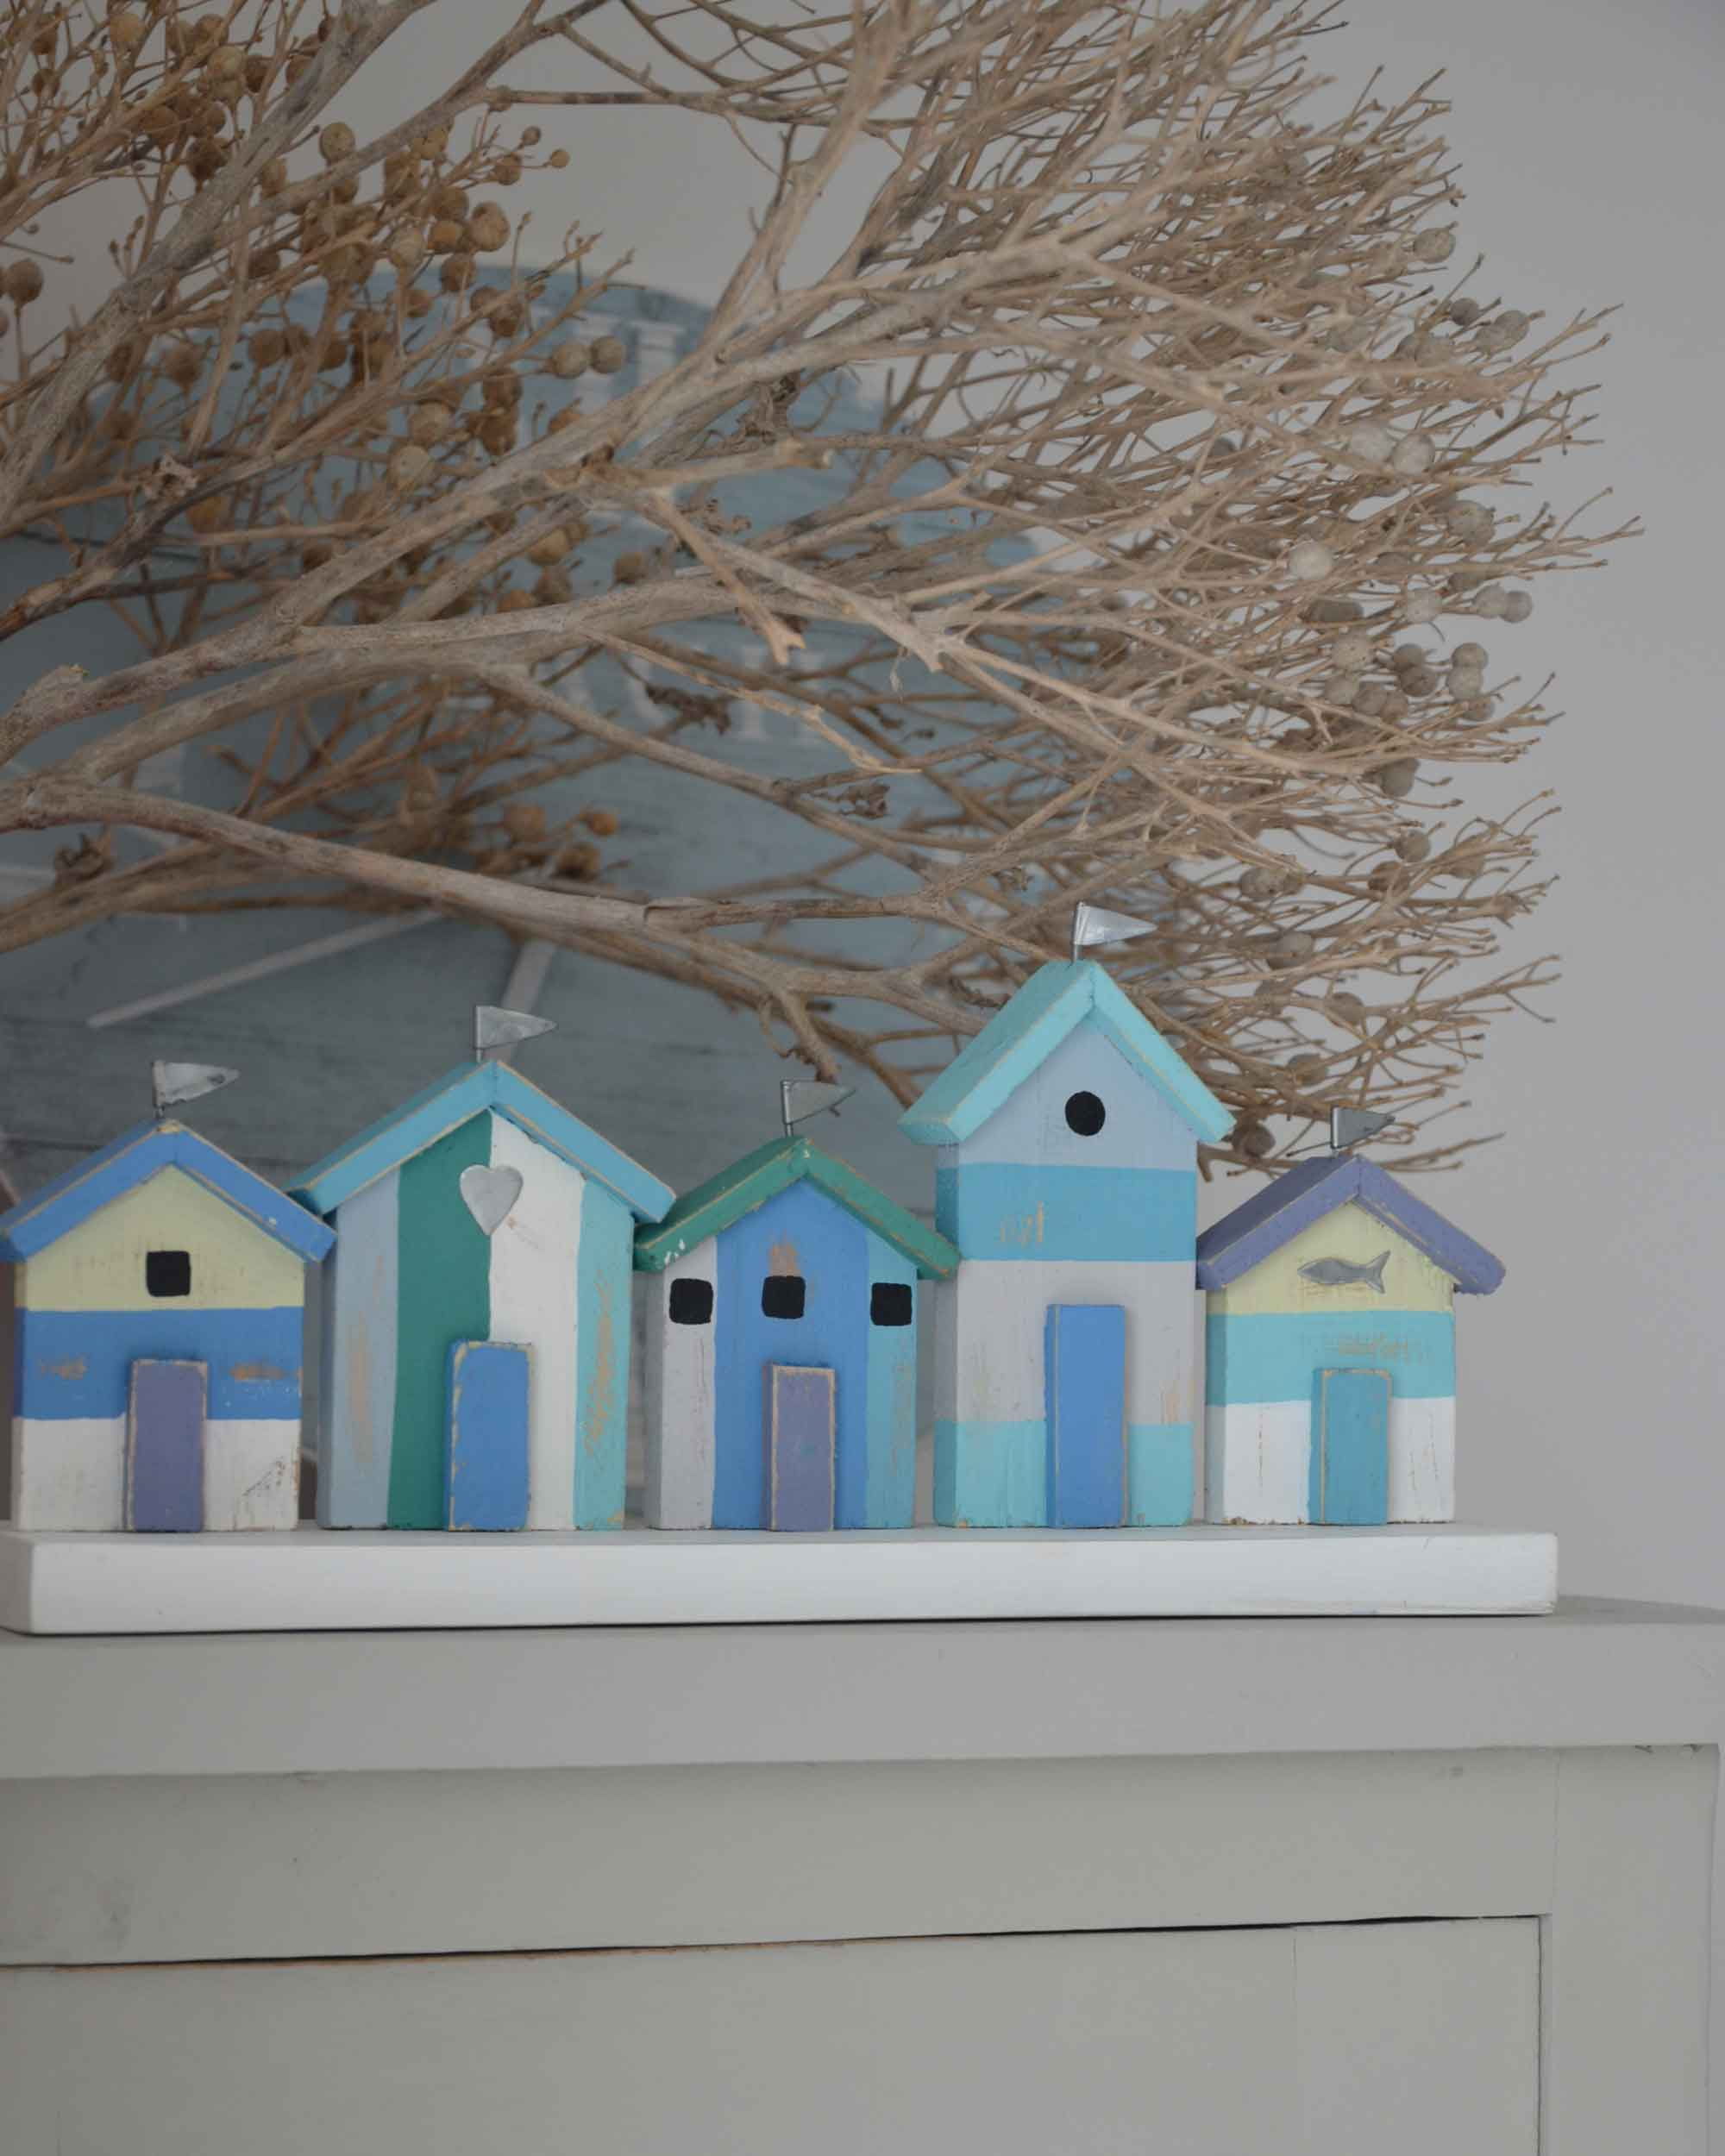 SEA HUES BEACH HUT BLOCK